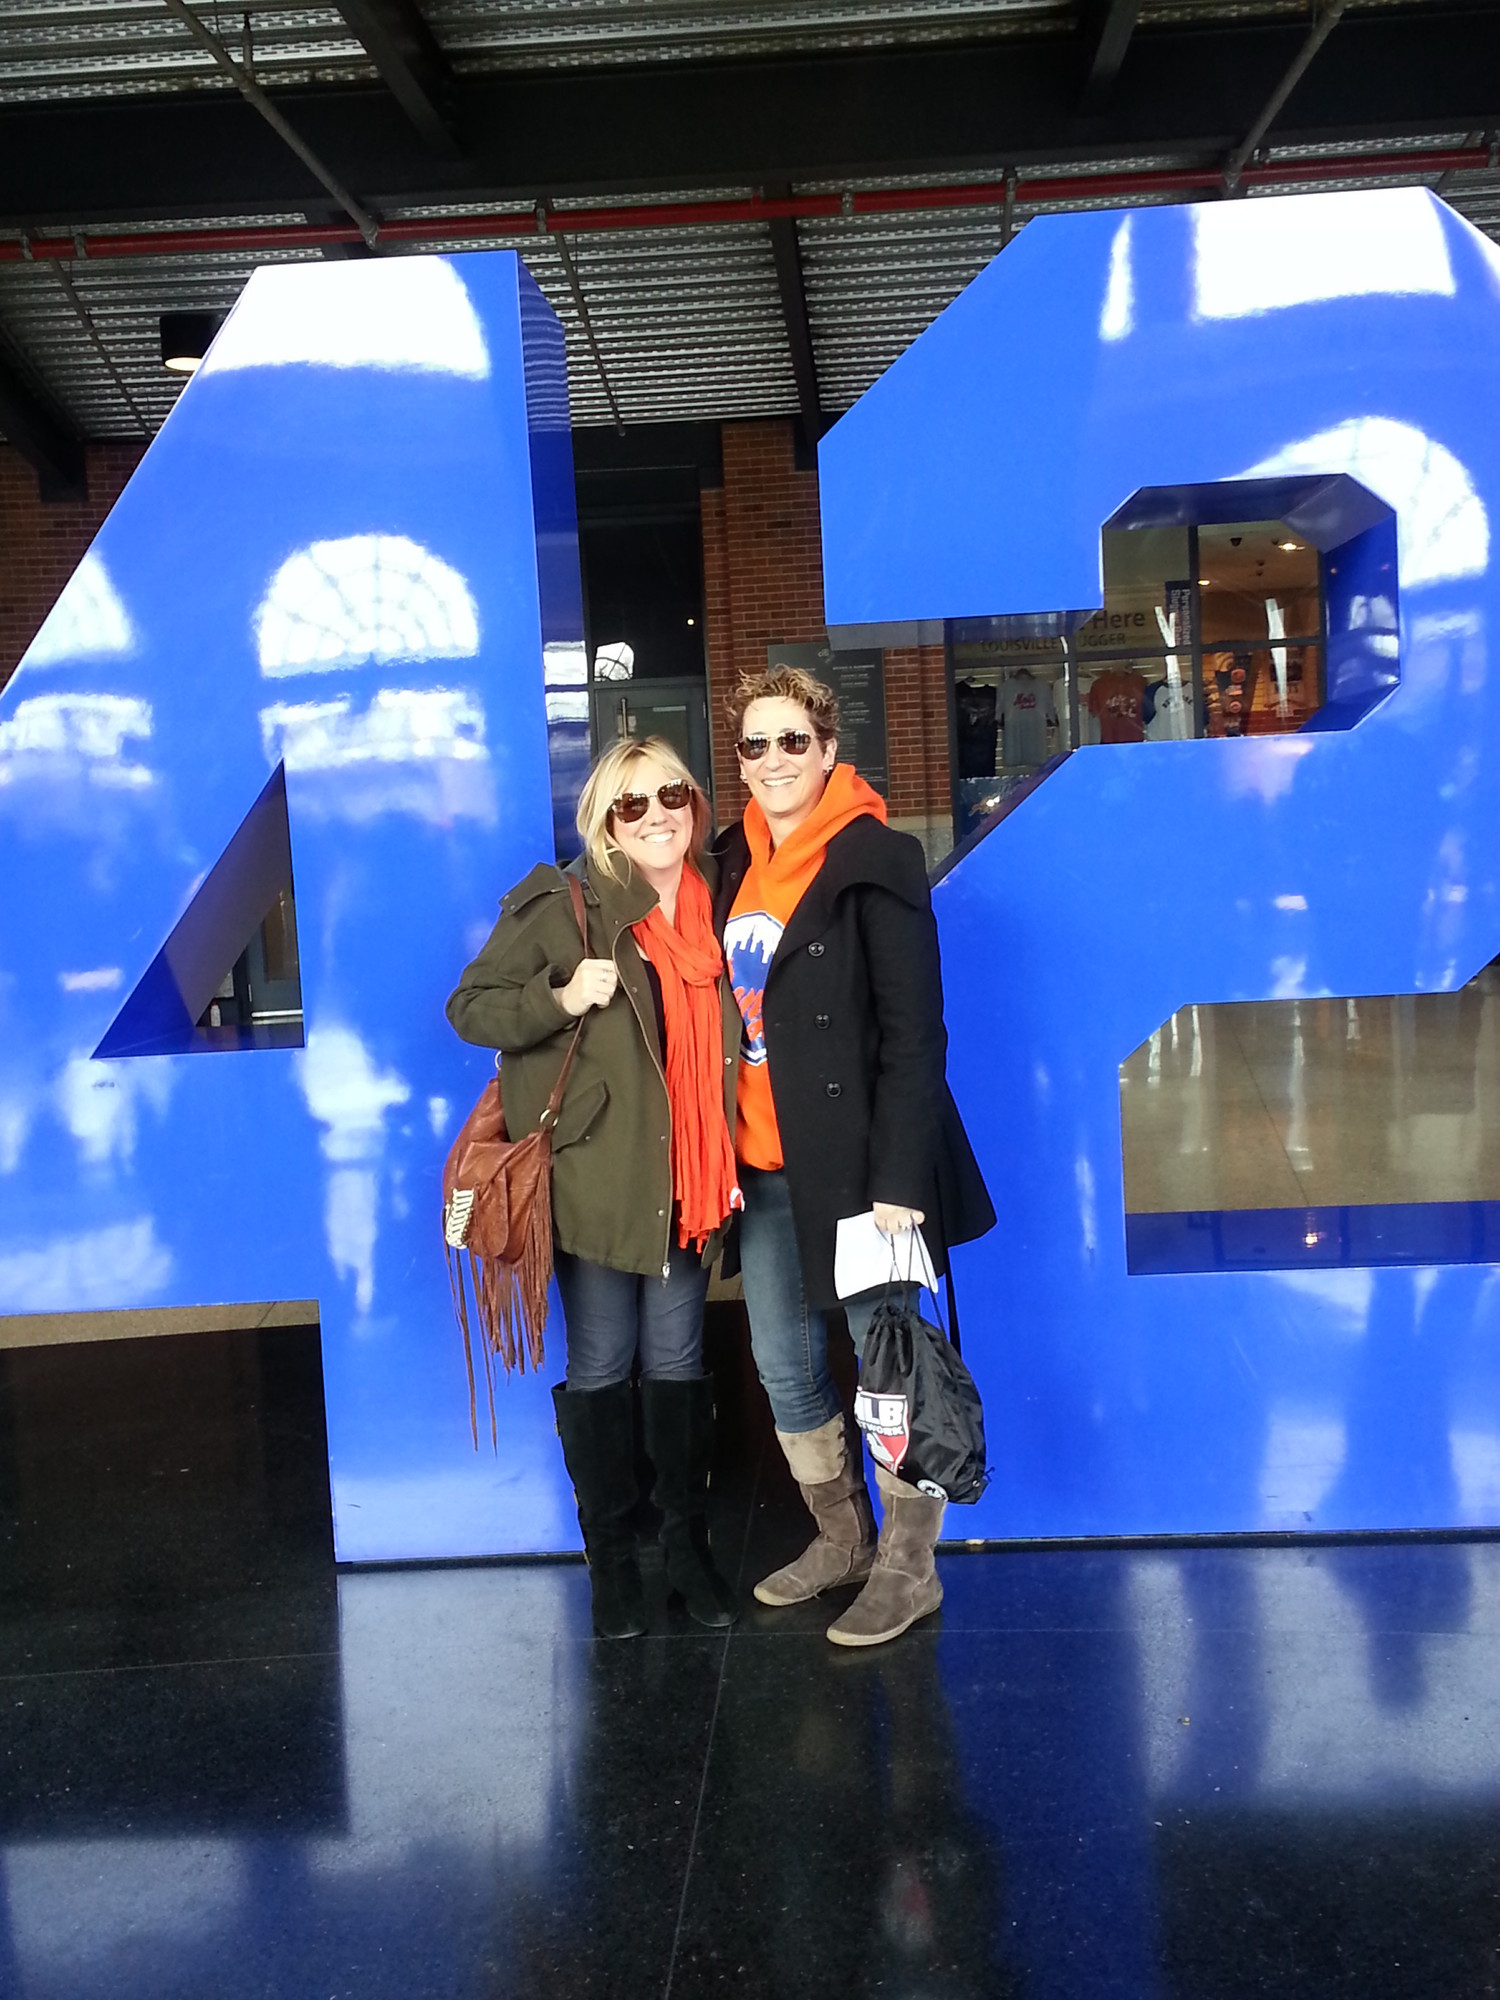 "Shari Dorfman and Ruth Rosenberg, fifth-grade teachers at Levy-Lakeside School in Merrick, attended a New York Mets game at Citi Field. The ""42"" statute in the background memorializes Jackie Robinson, who wore the number and is one of the historical figures Dorfman and Rosenberg teach their students about as an example of 'how one person can make a difference.'"